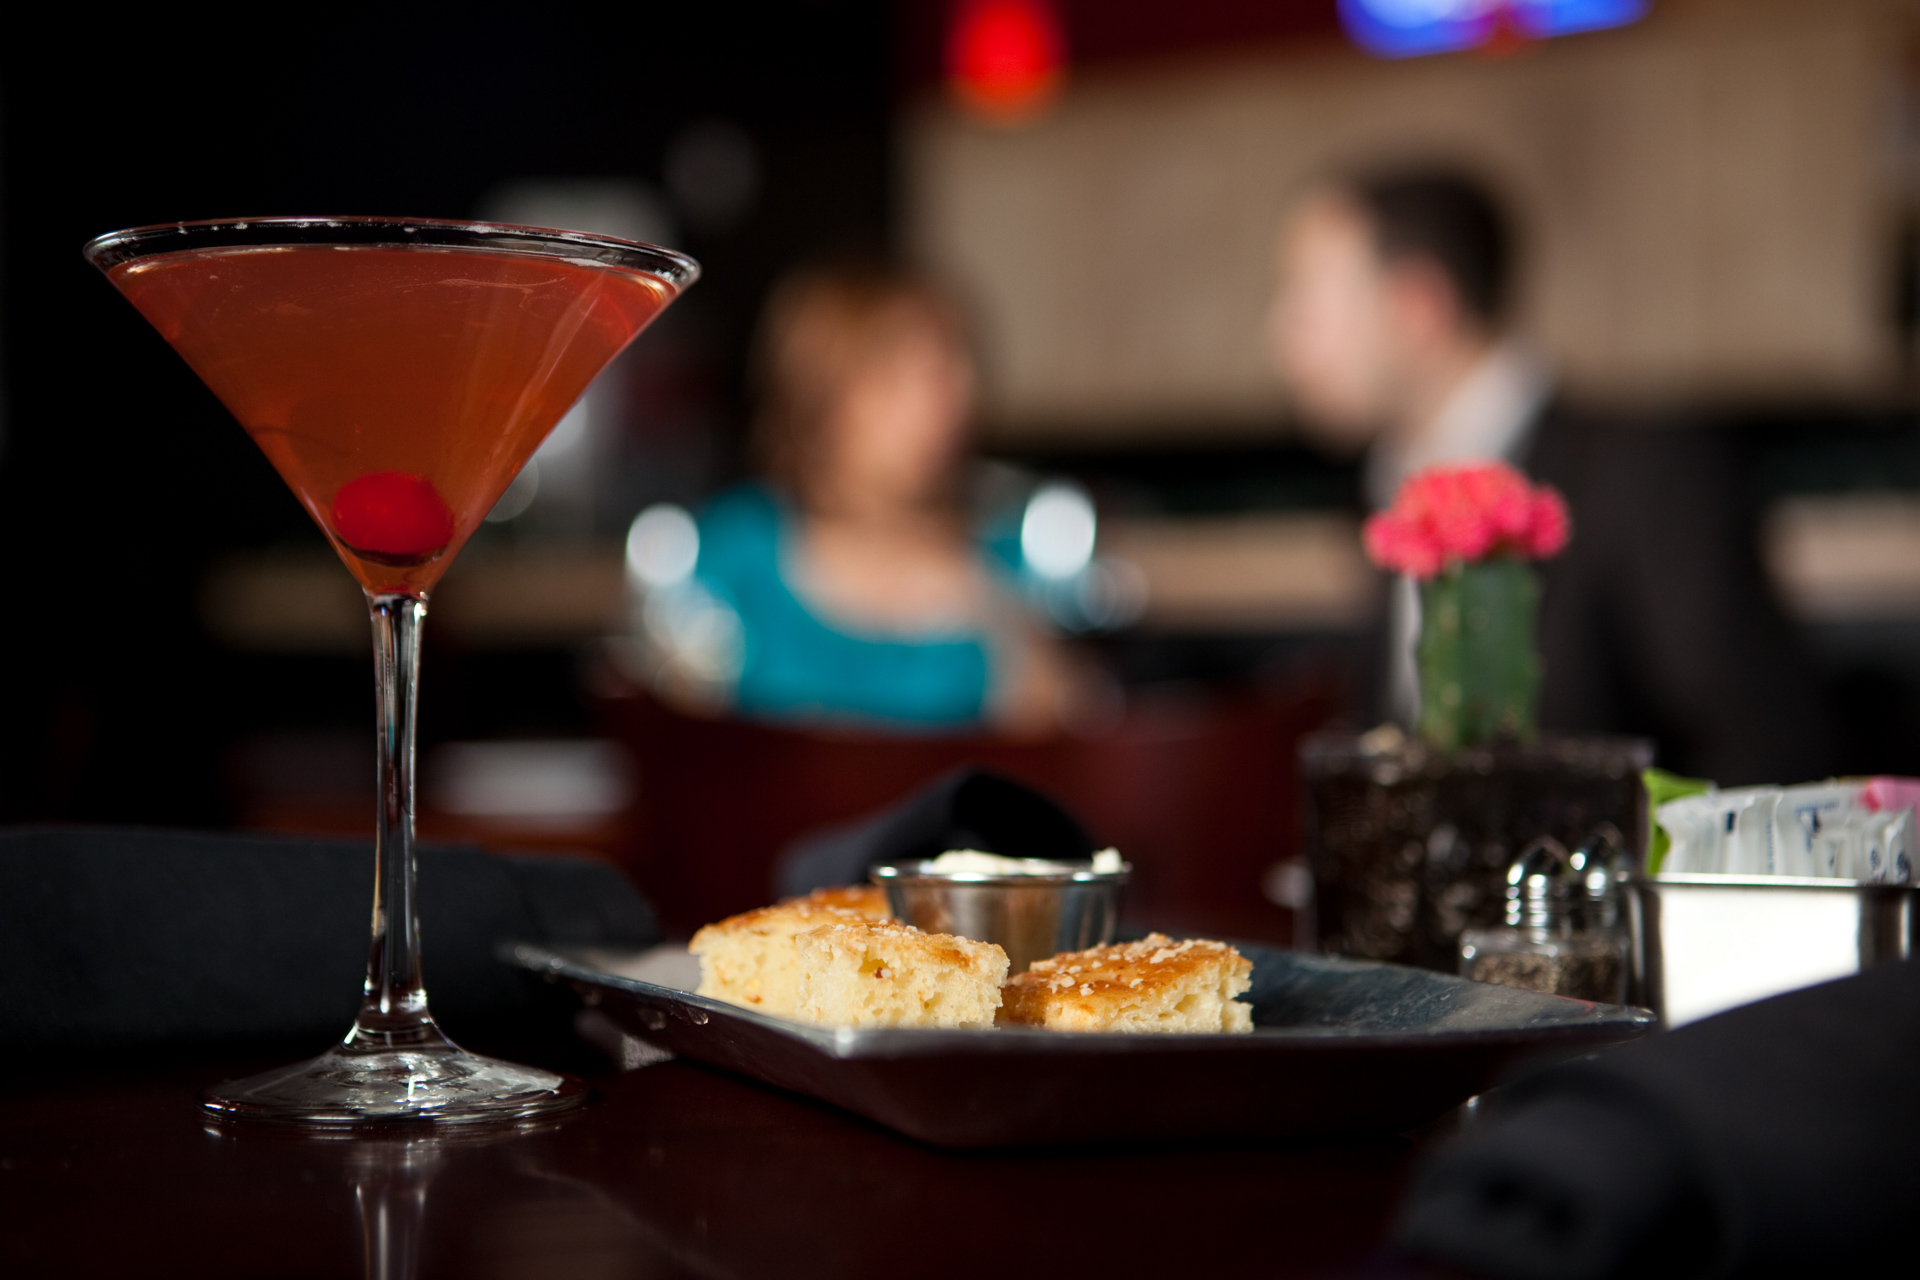 Editorial image of bread and Martini